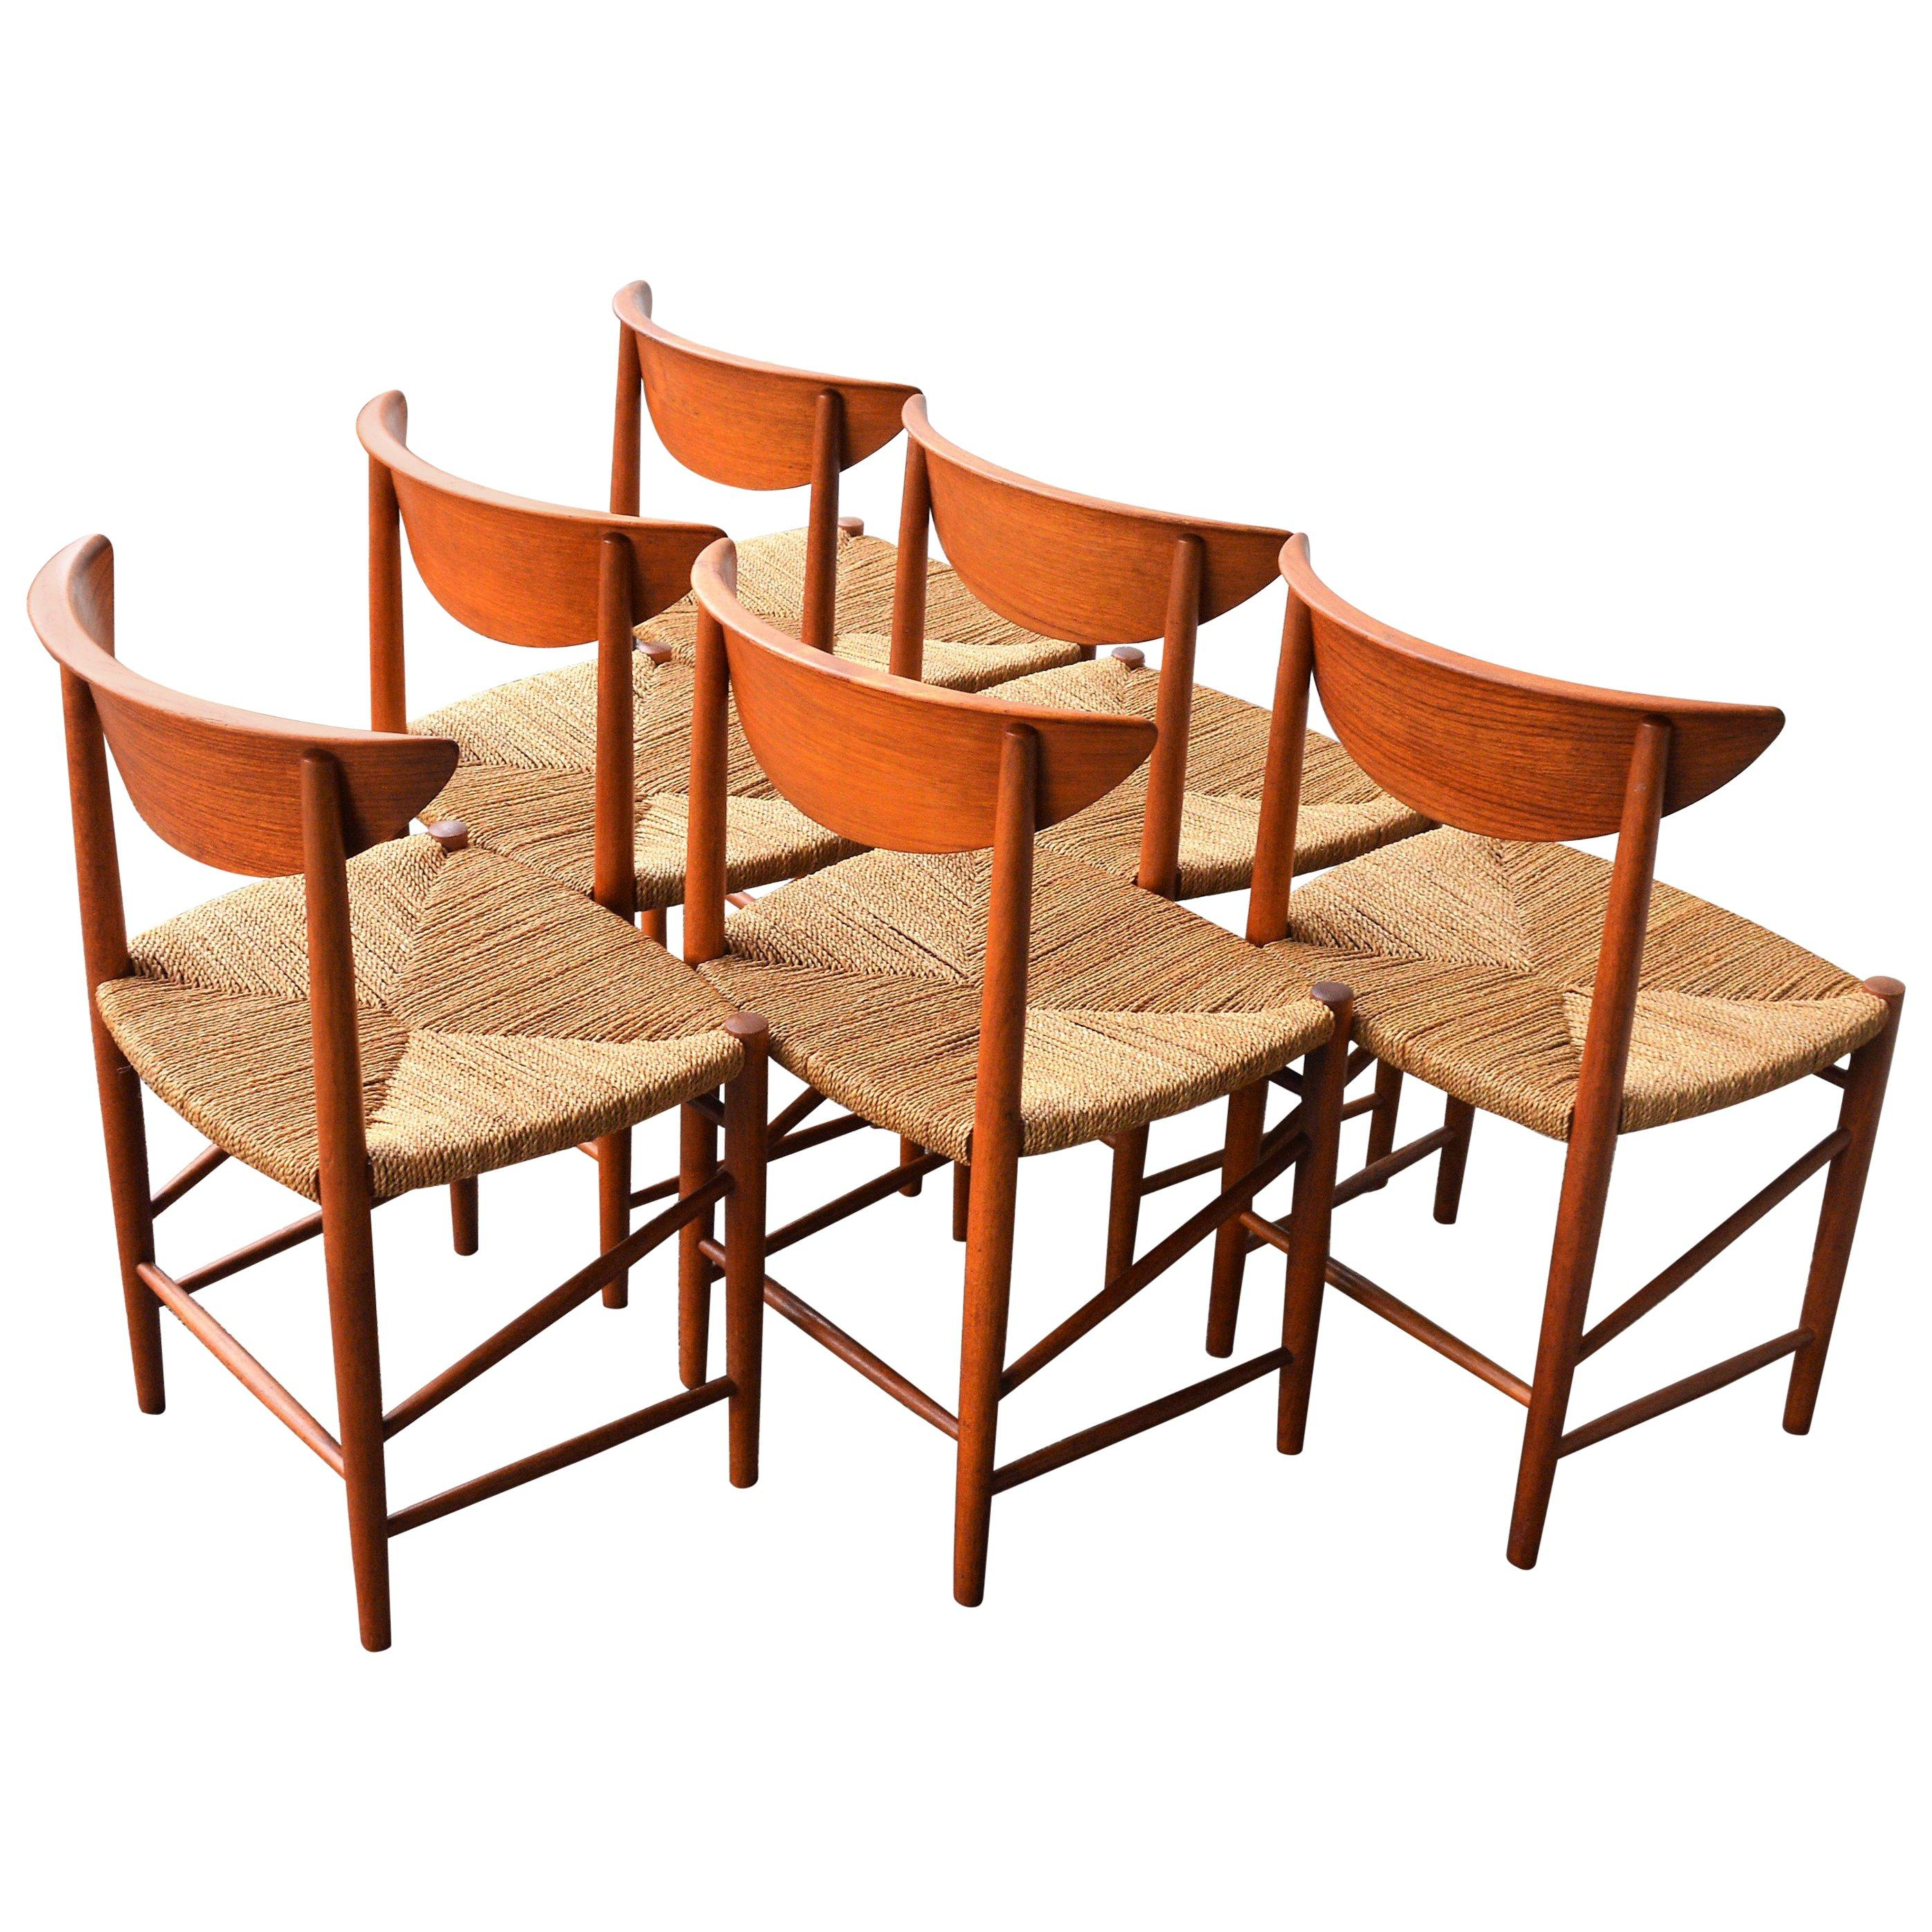 Seagrass Dining Chair Set Of Six Teak Hvidt Mølgaard Model 316 Dining Chairs With Seagrass Seats